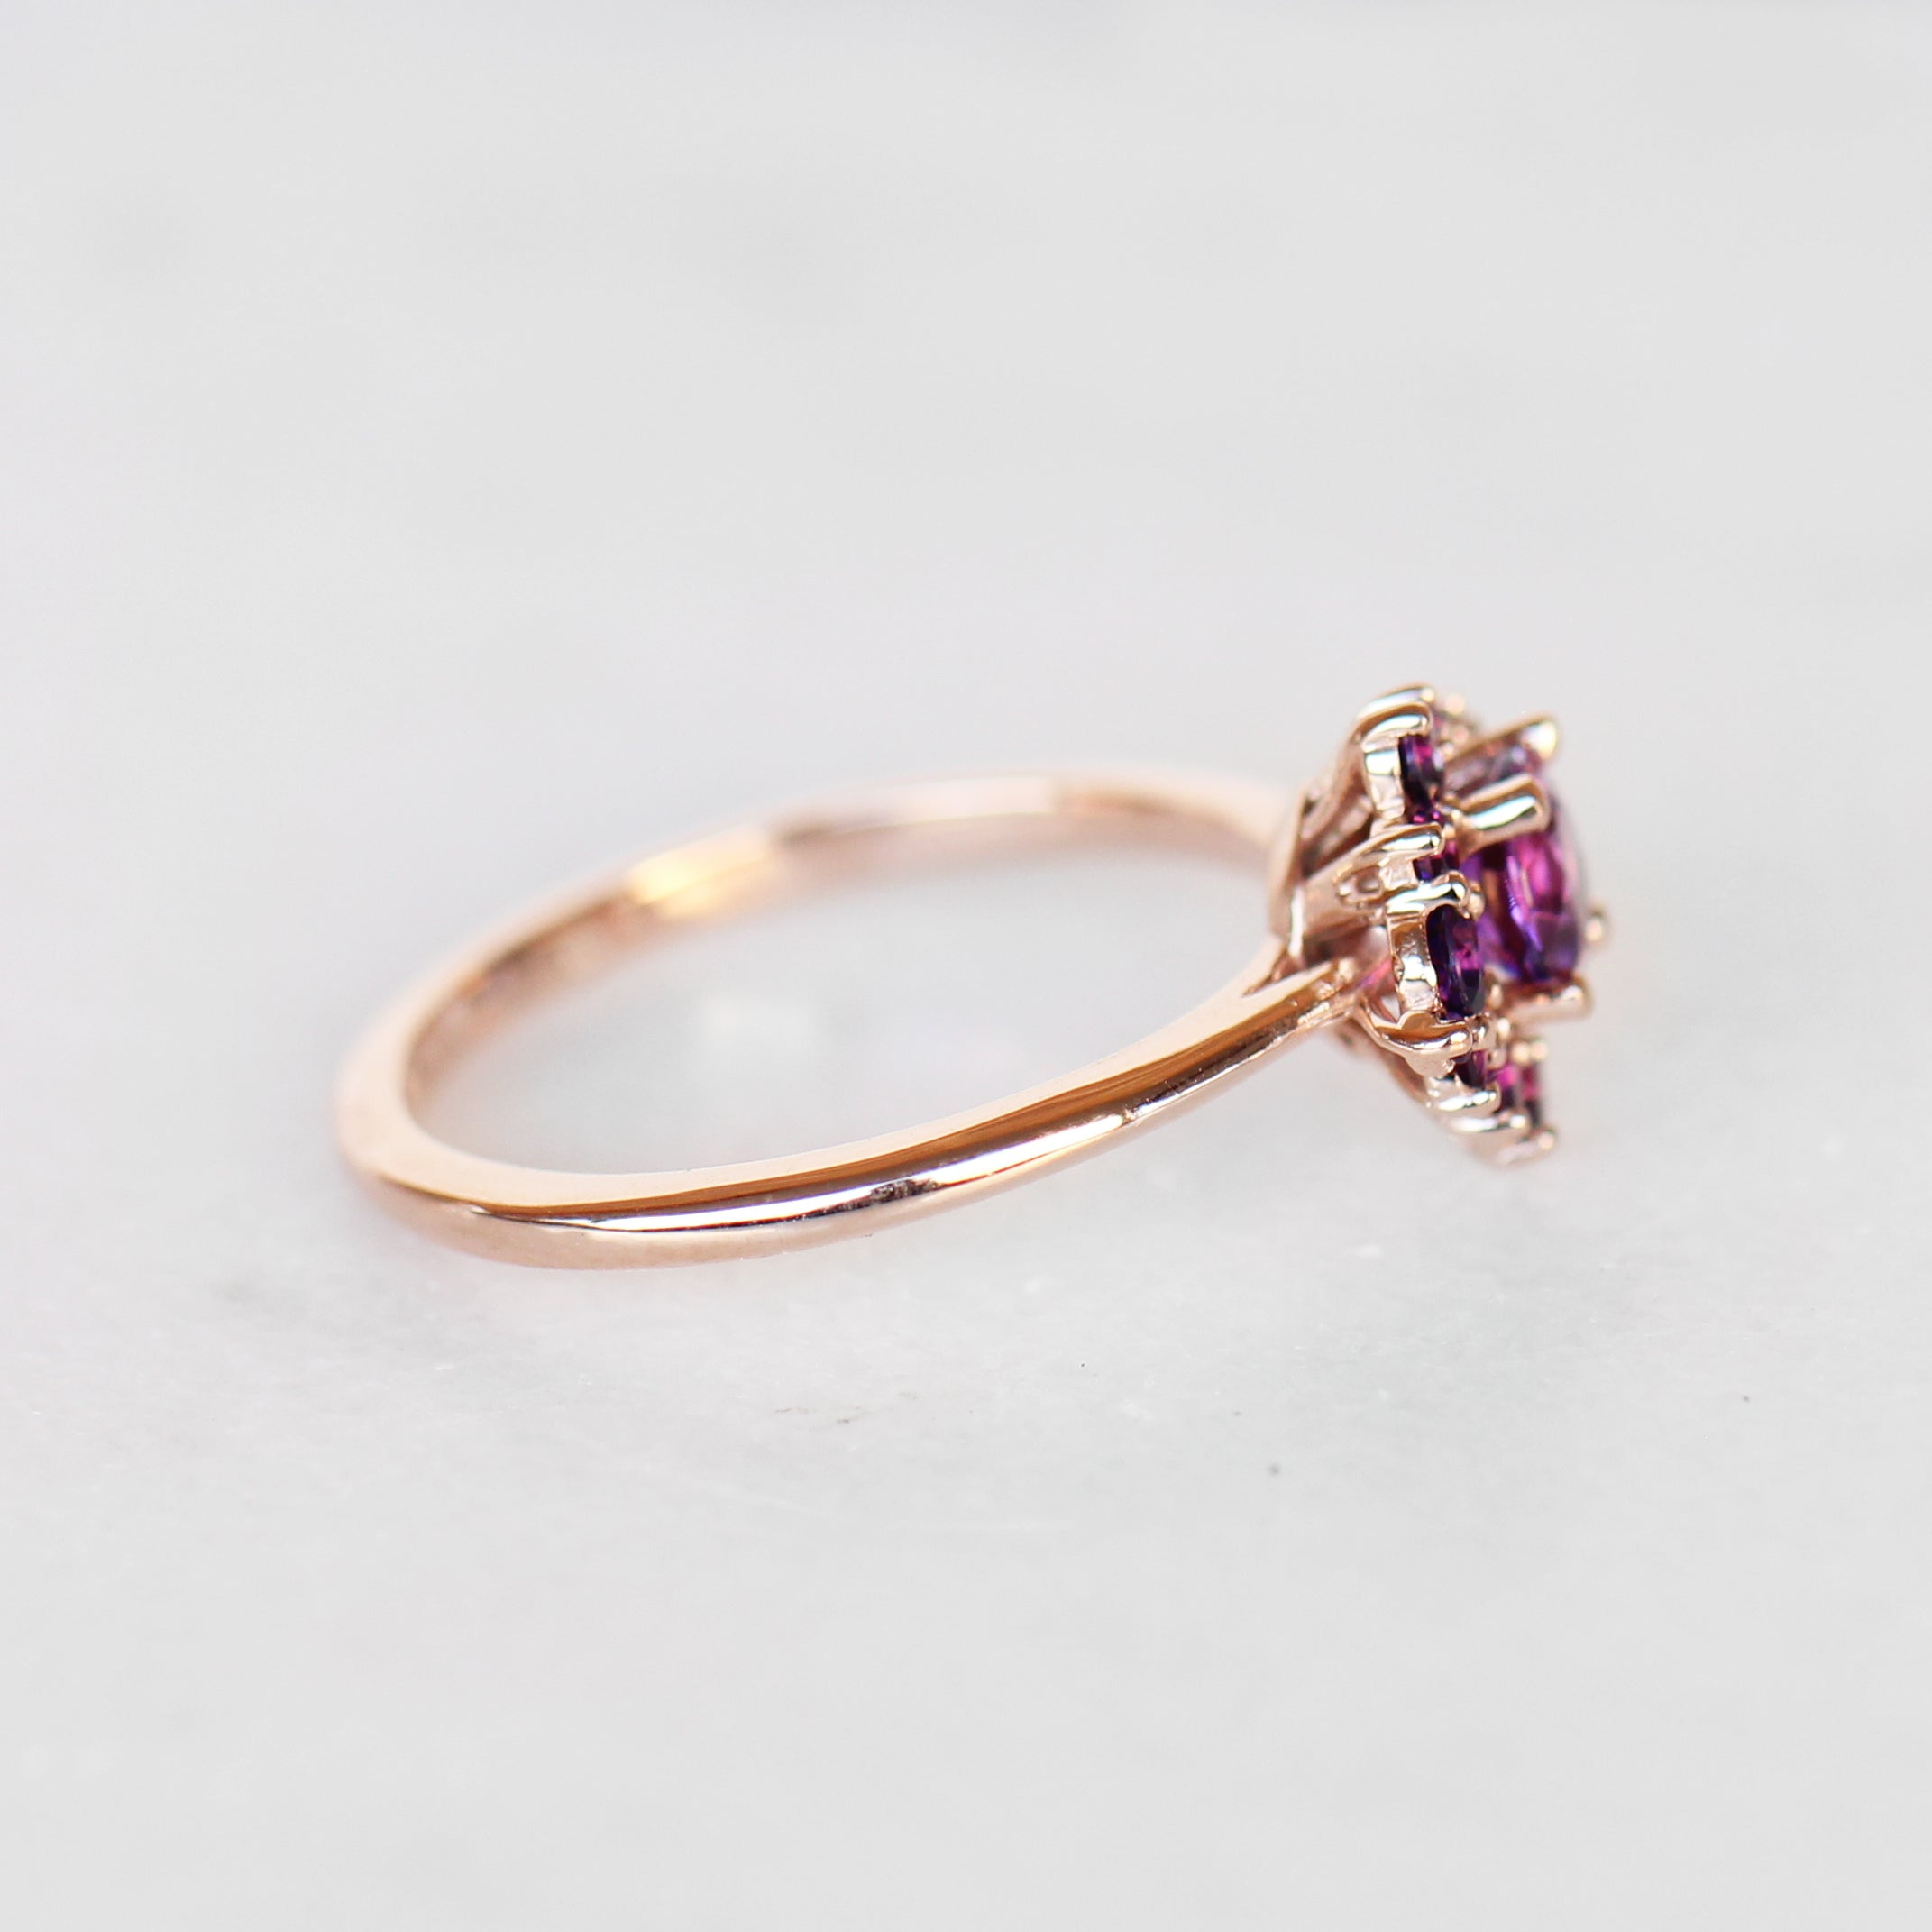 Orion Ring in all Amethyst in 10k Rose Gold - Ready to Size and Ship - Salt & Pepper Celestial Diamond Engagement Rings and Wedding Bands  by Midwinter Co.